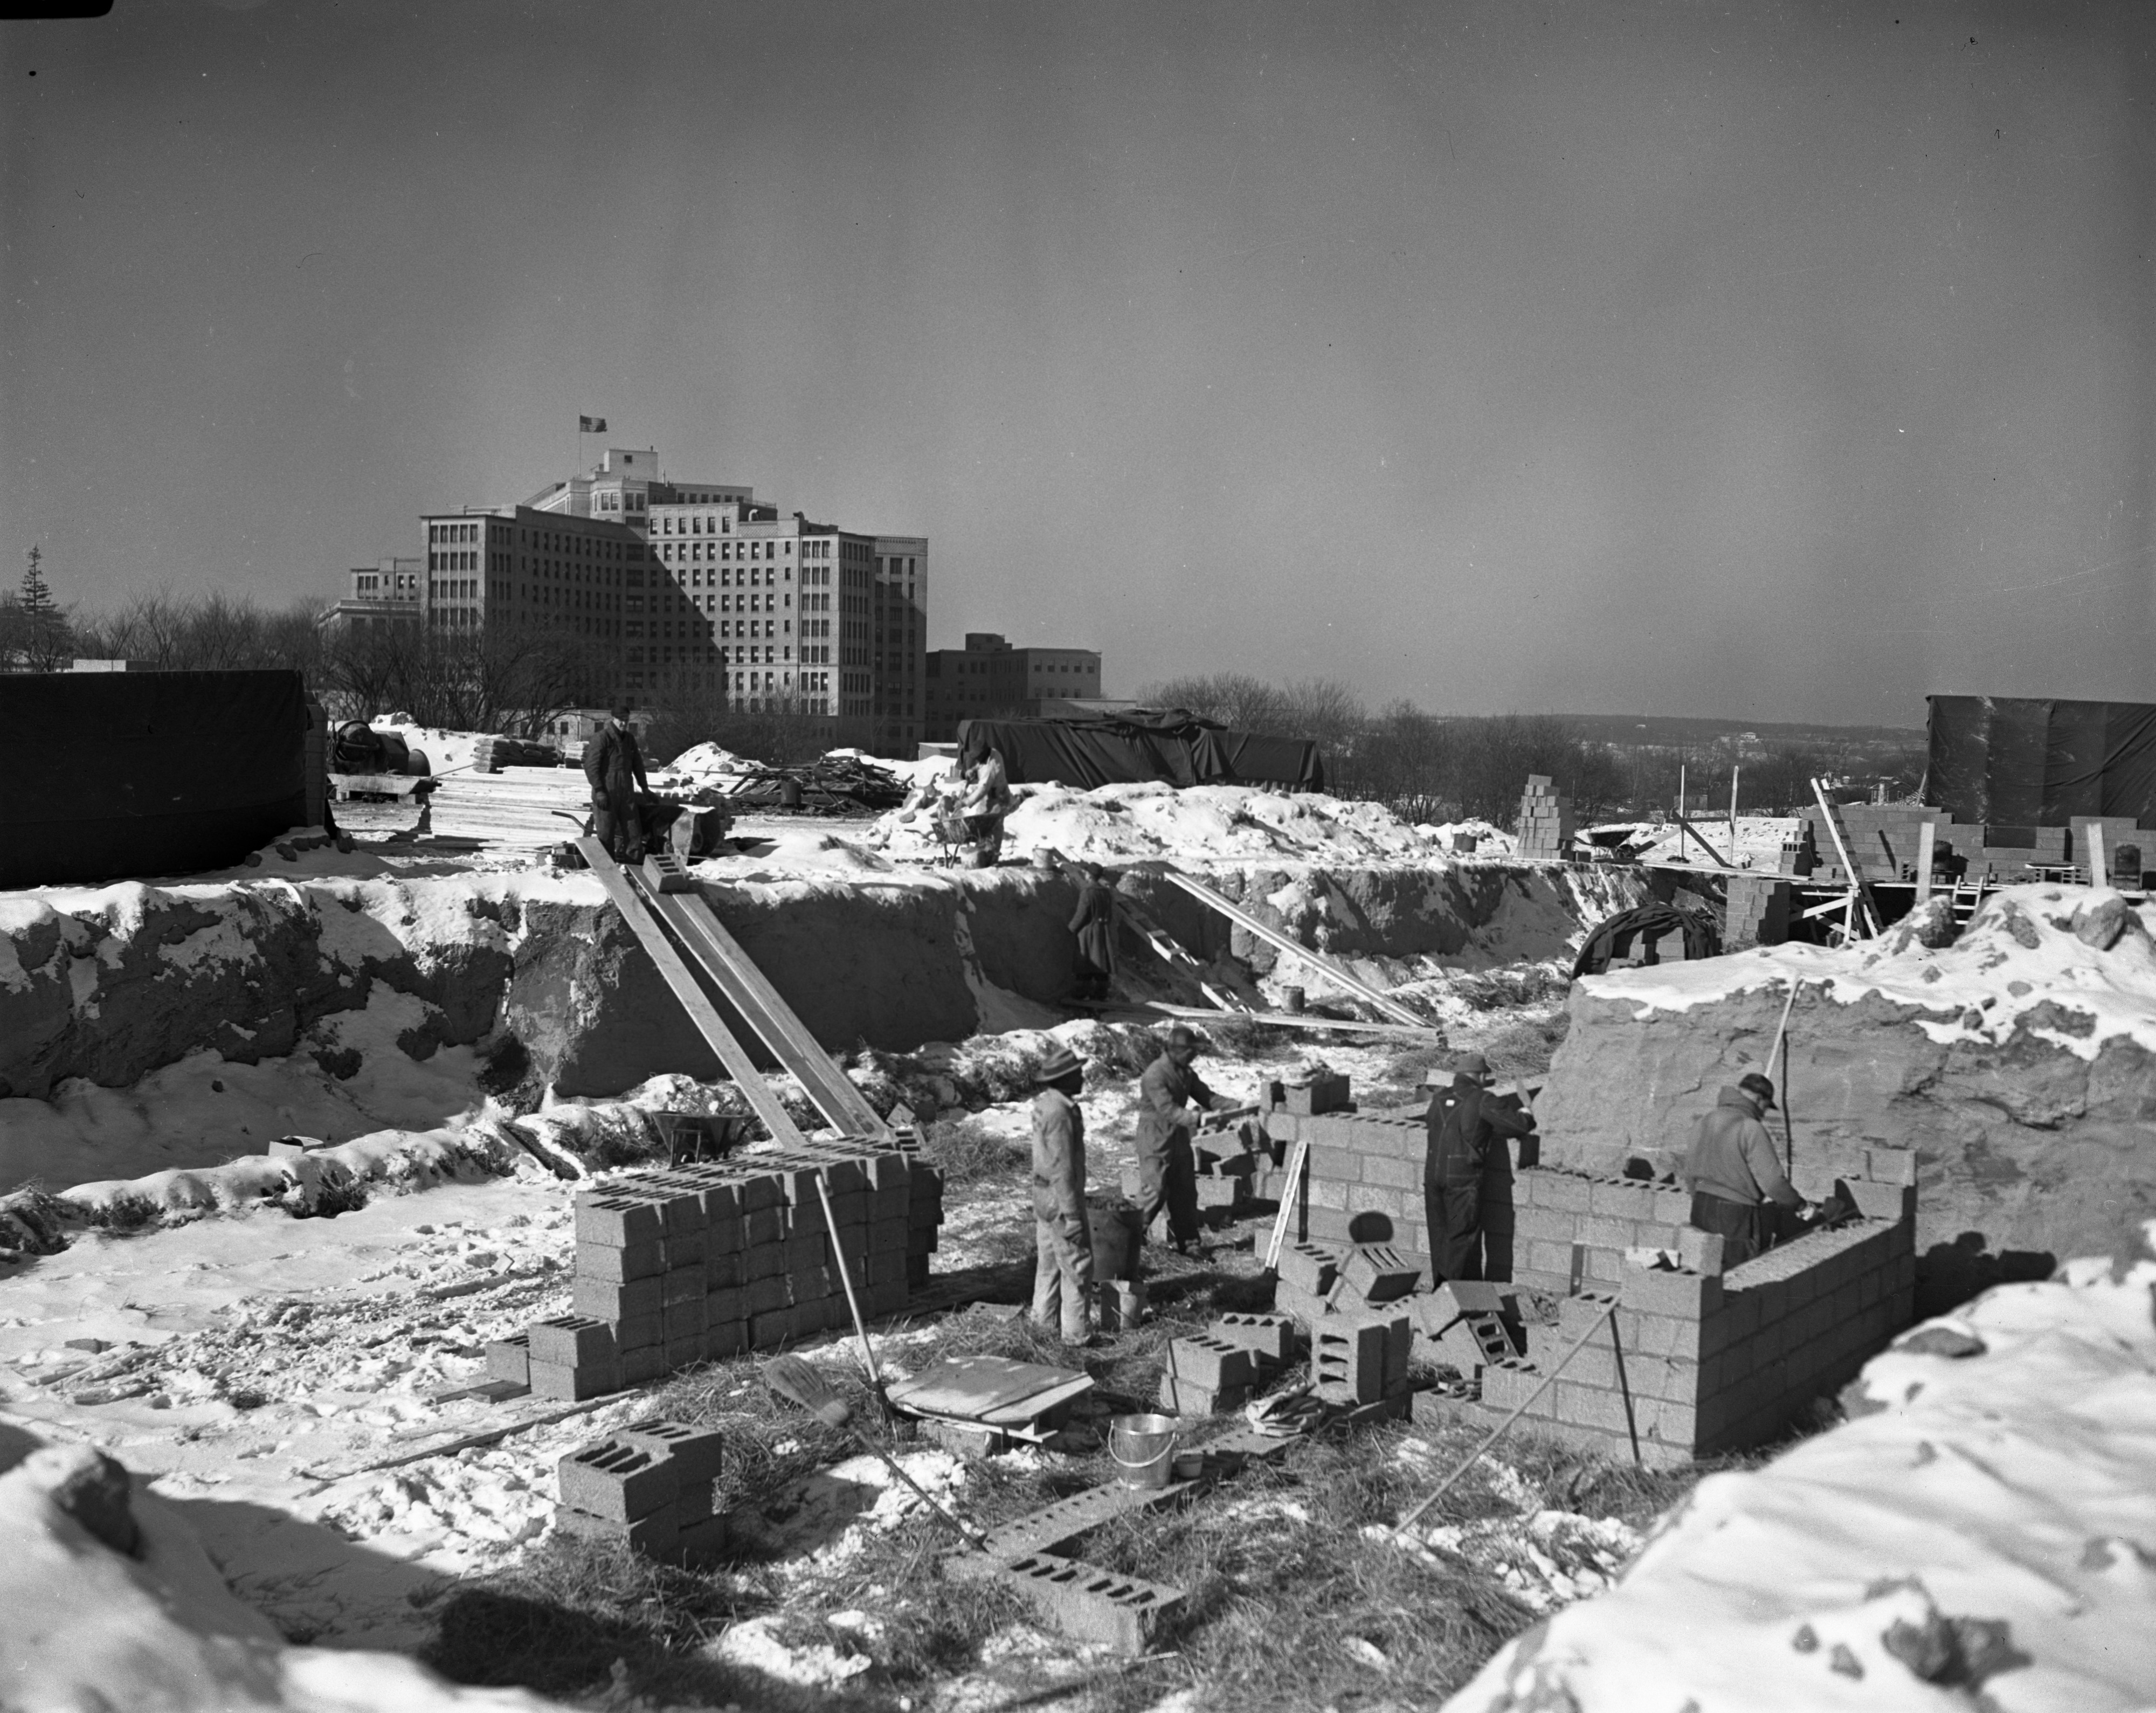 Construction of married veteran apartment building at the University of Michigan, January 1946 image